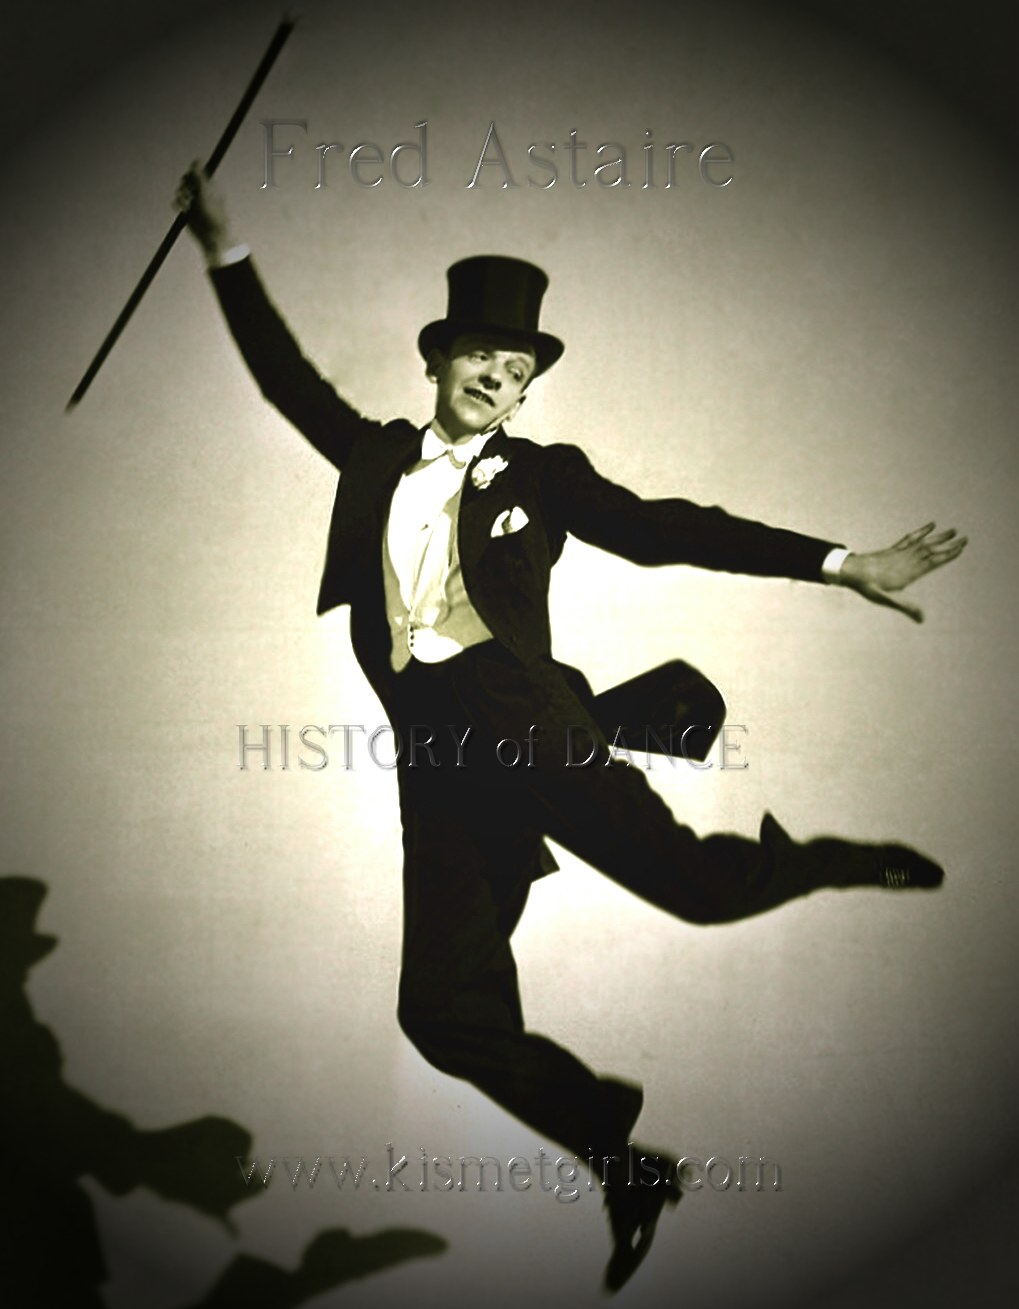 Fred Astaire percussive tap dance showman